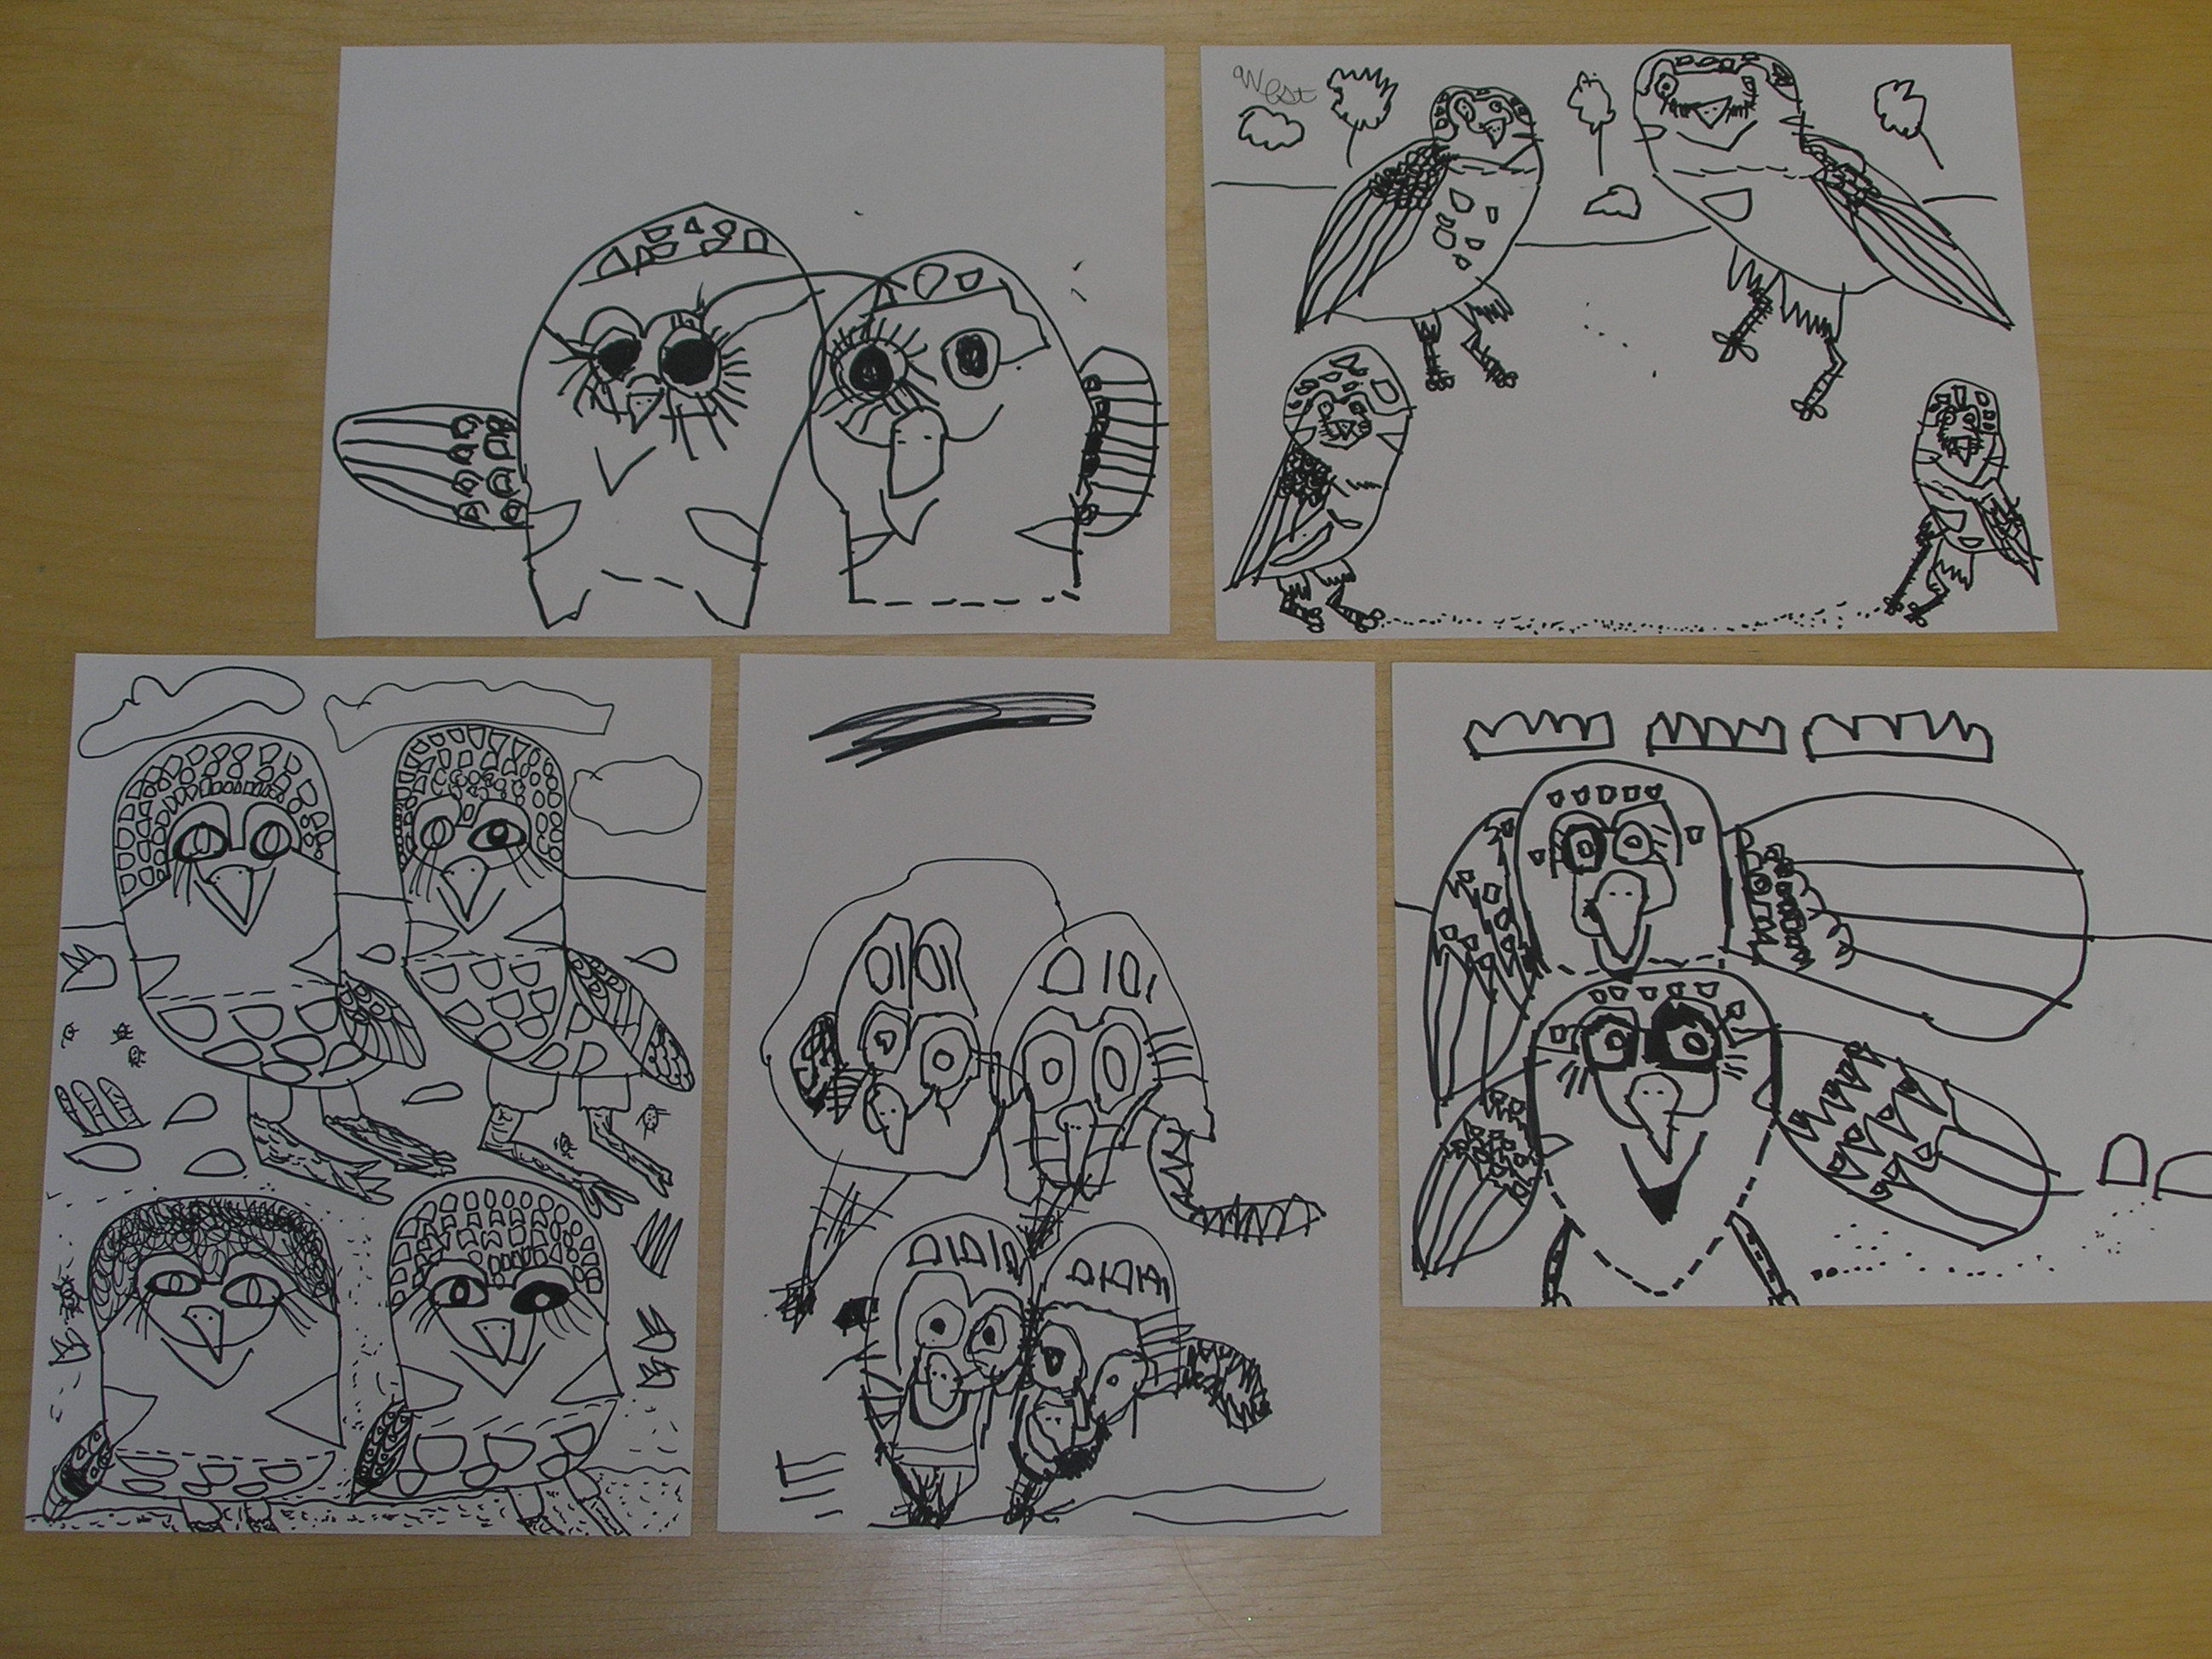 monart drawing program the art park these burrowing owl drawings were drawn by students ages 4 7 notice the attention to detail individuality of the compositions placement